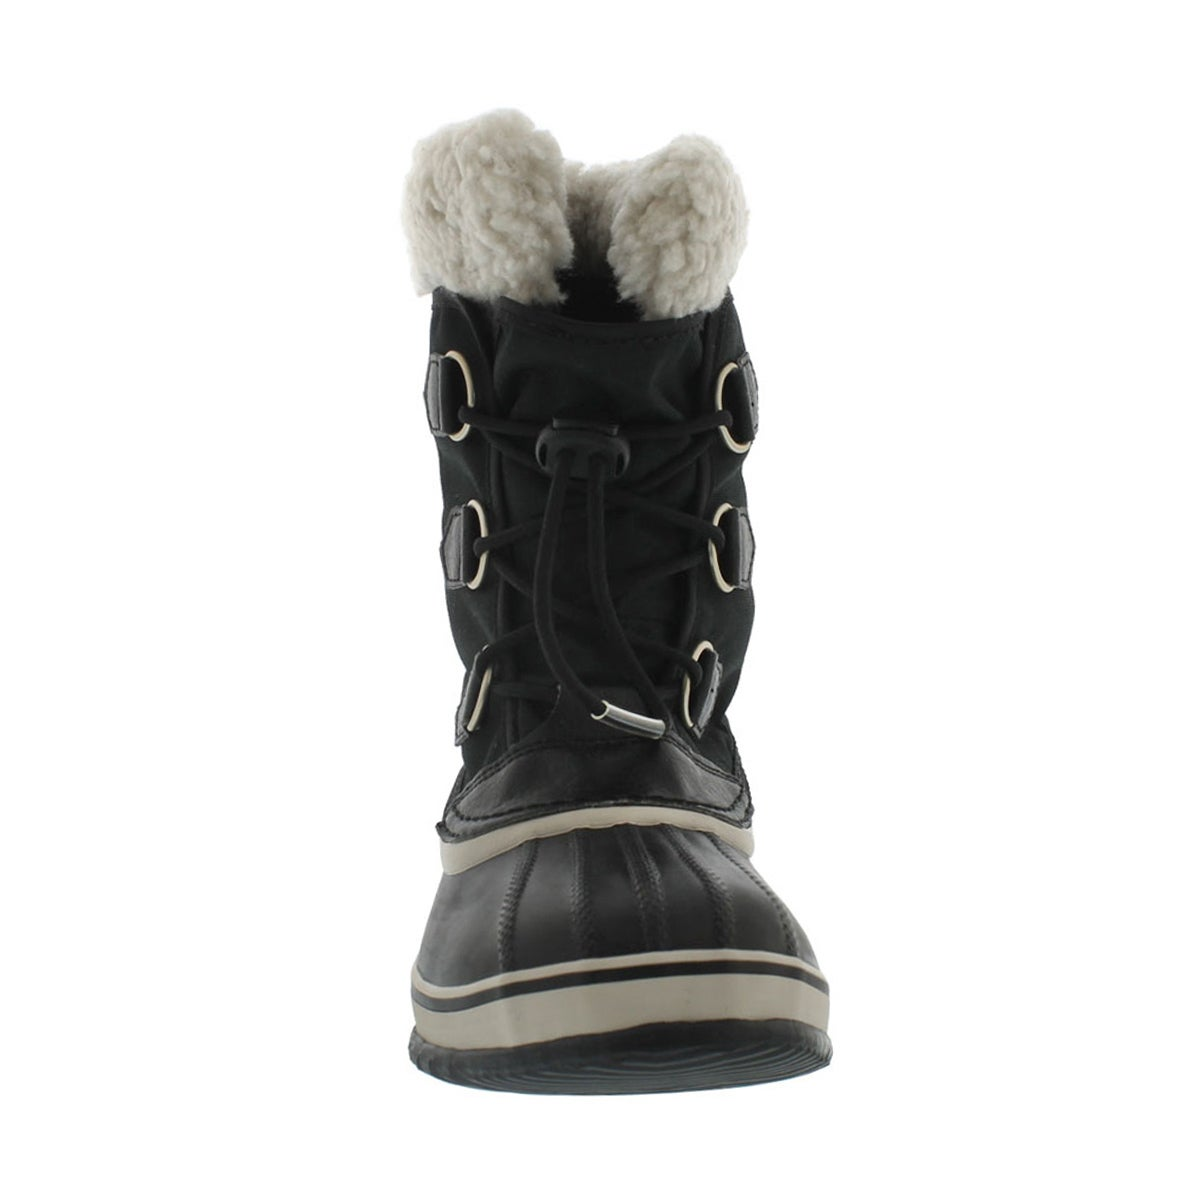 Bys Yoot Pac Nylon blk wtpf winter boot